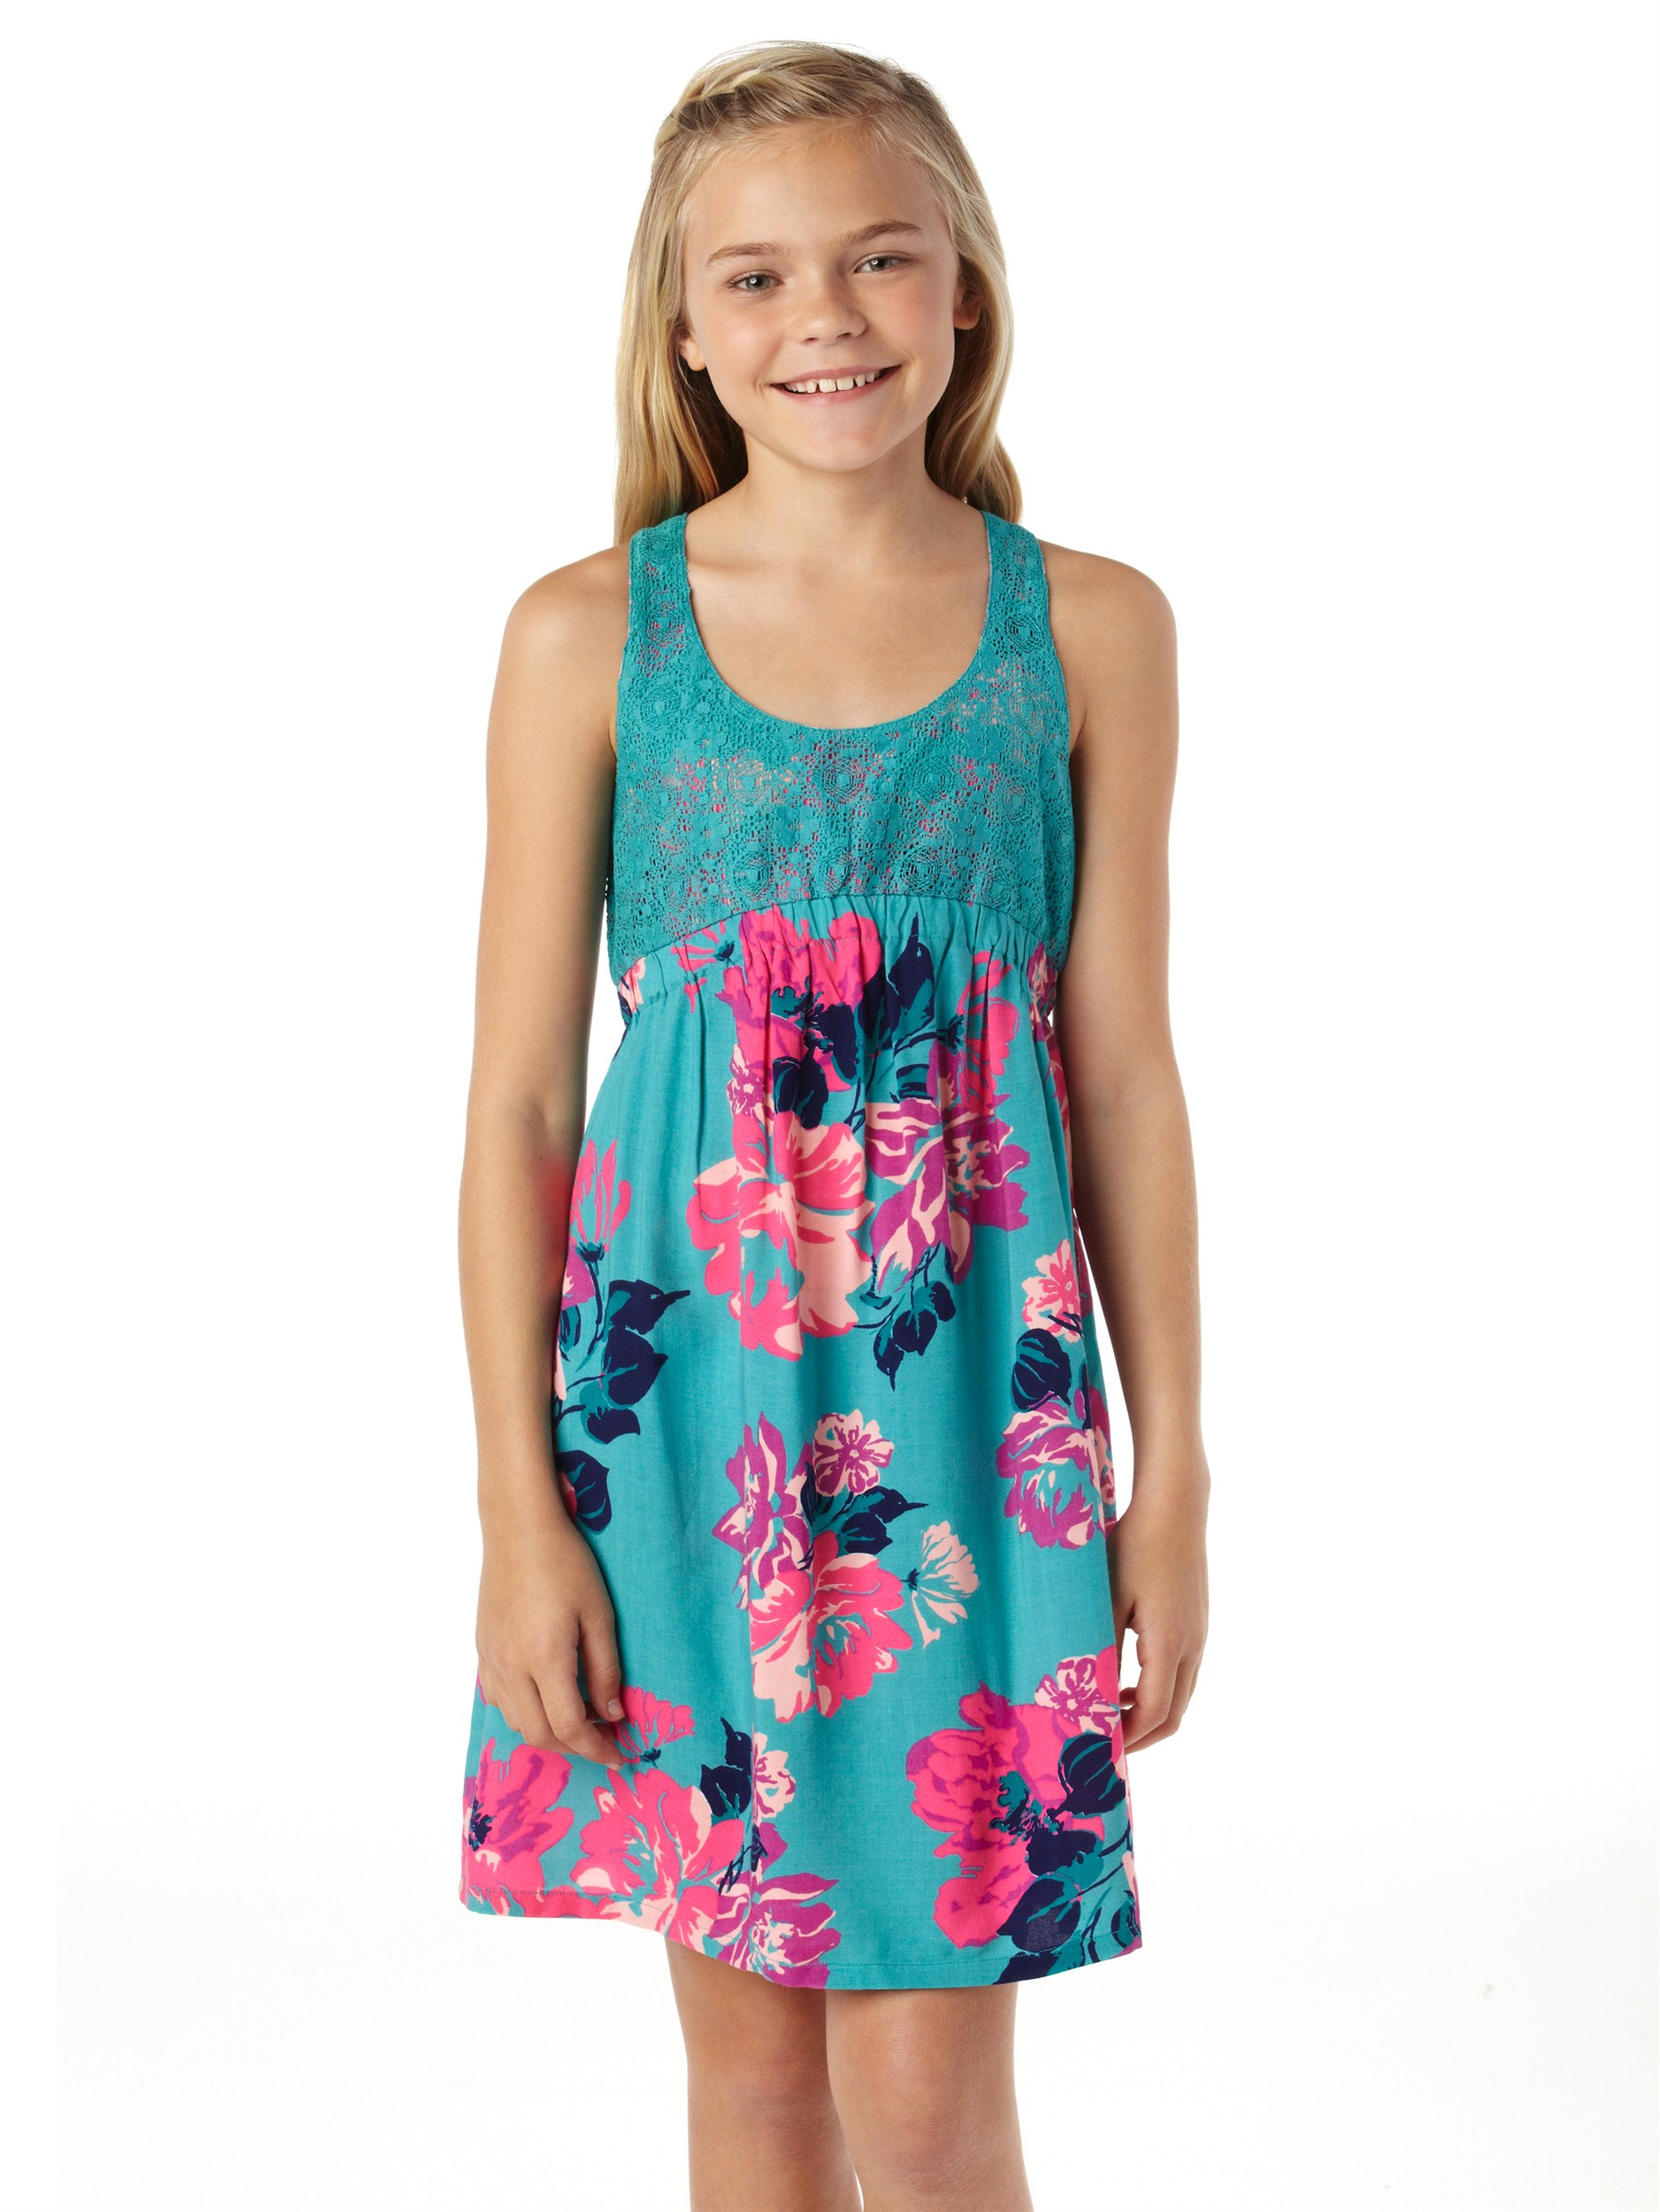 We have the dress for every occasion, casual day and evening formal dresses. Shop at MRP Clothing for more fashion online and get delivery to your door.